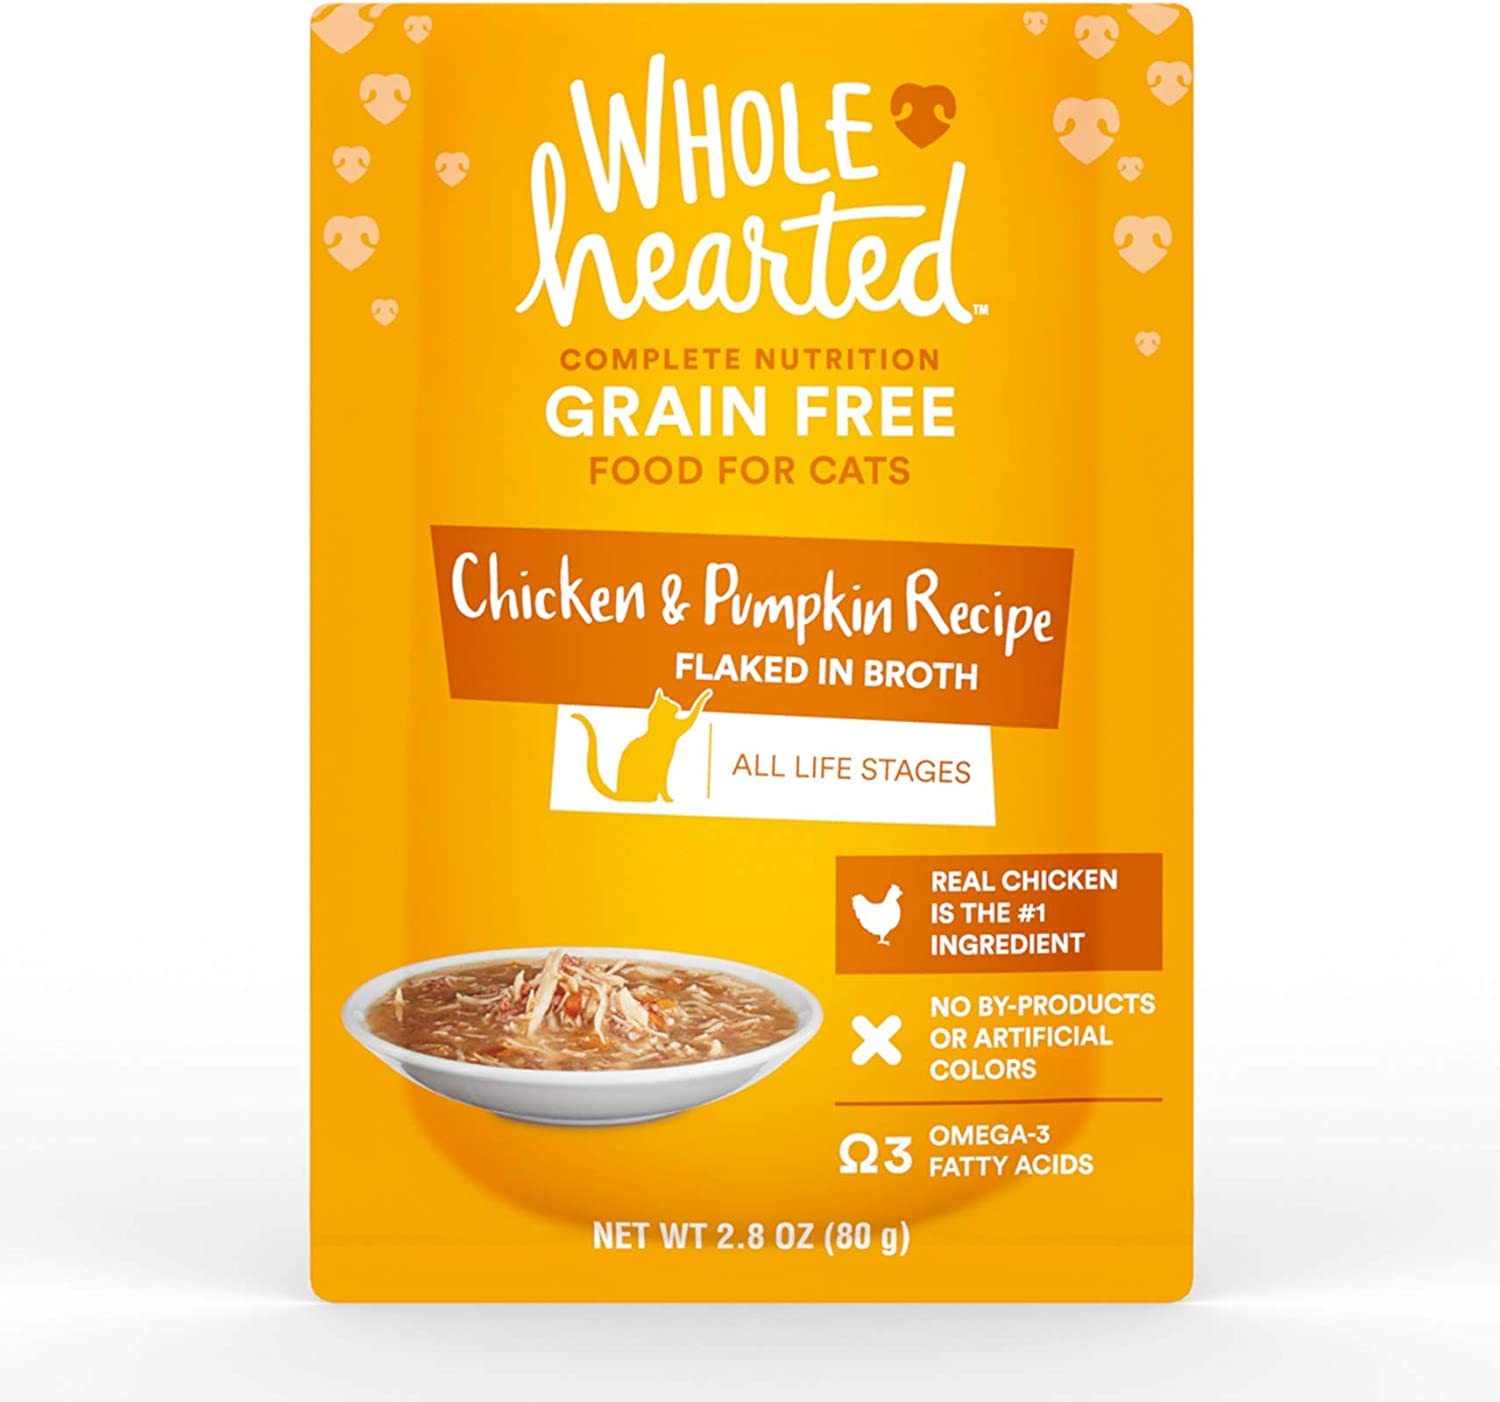 WholeHearted Grain Free Chicken & Pumpkin Recipe Flaked in Broth Wet Cat Food, 2.8 oz., Case of 12, 12 X 2.8 OZ